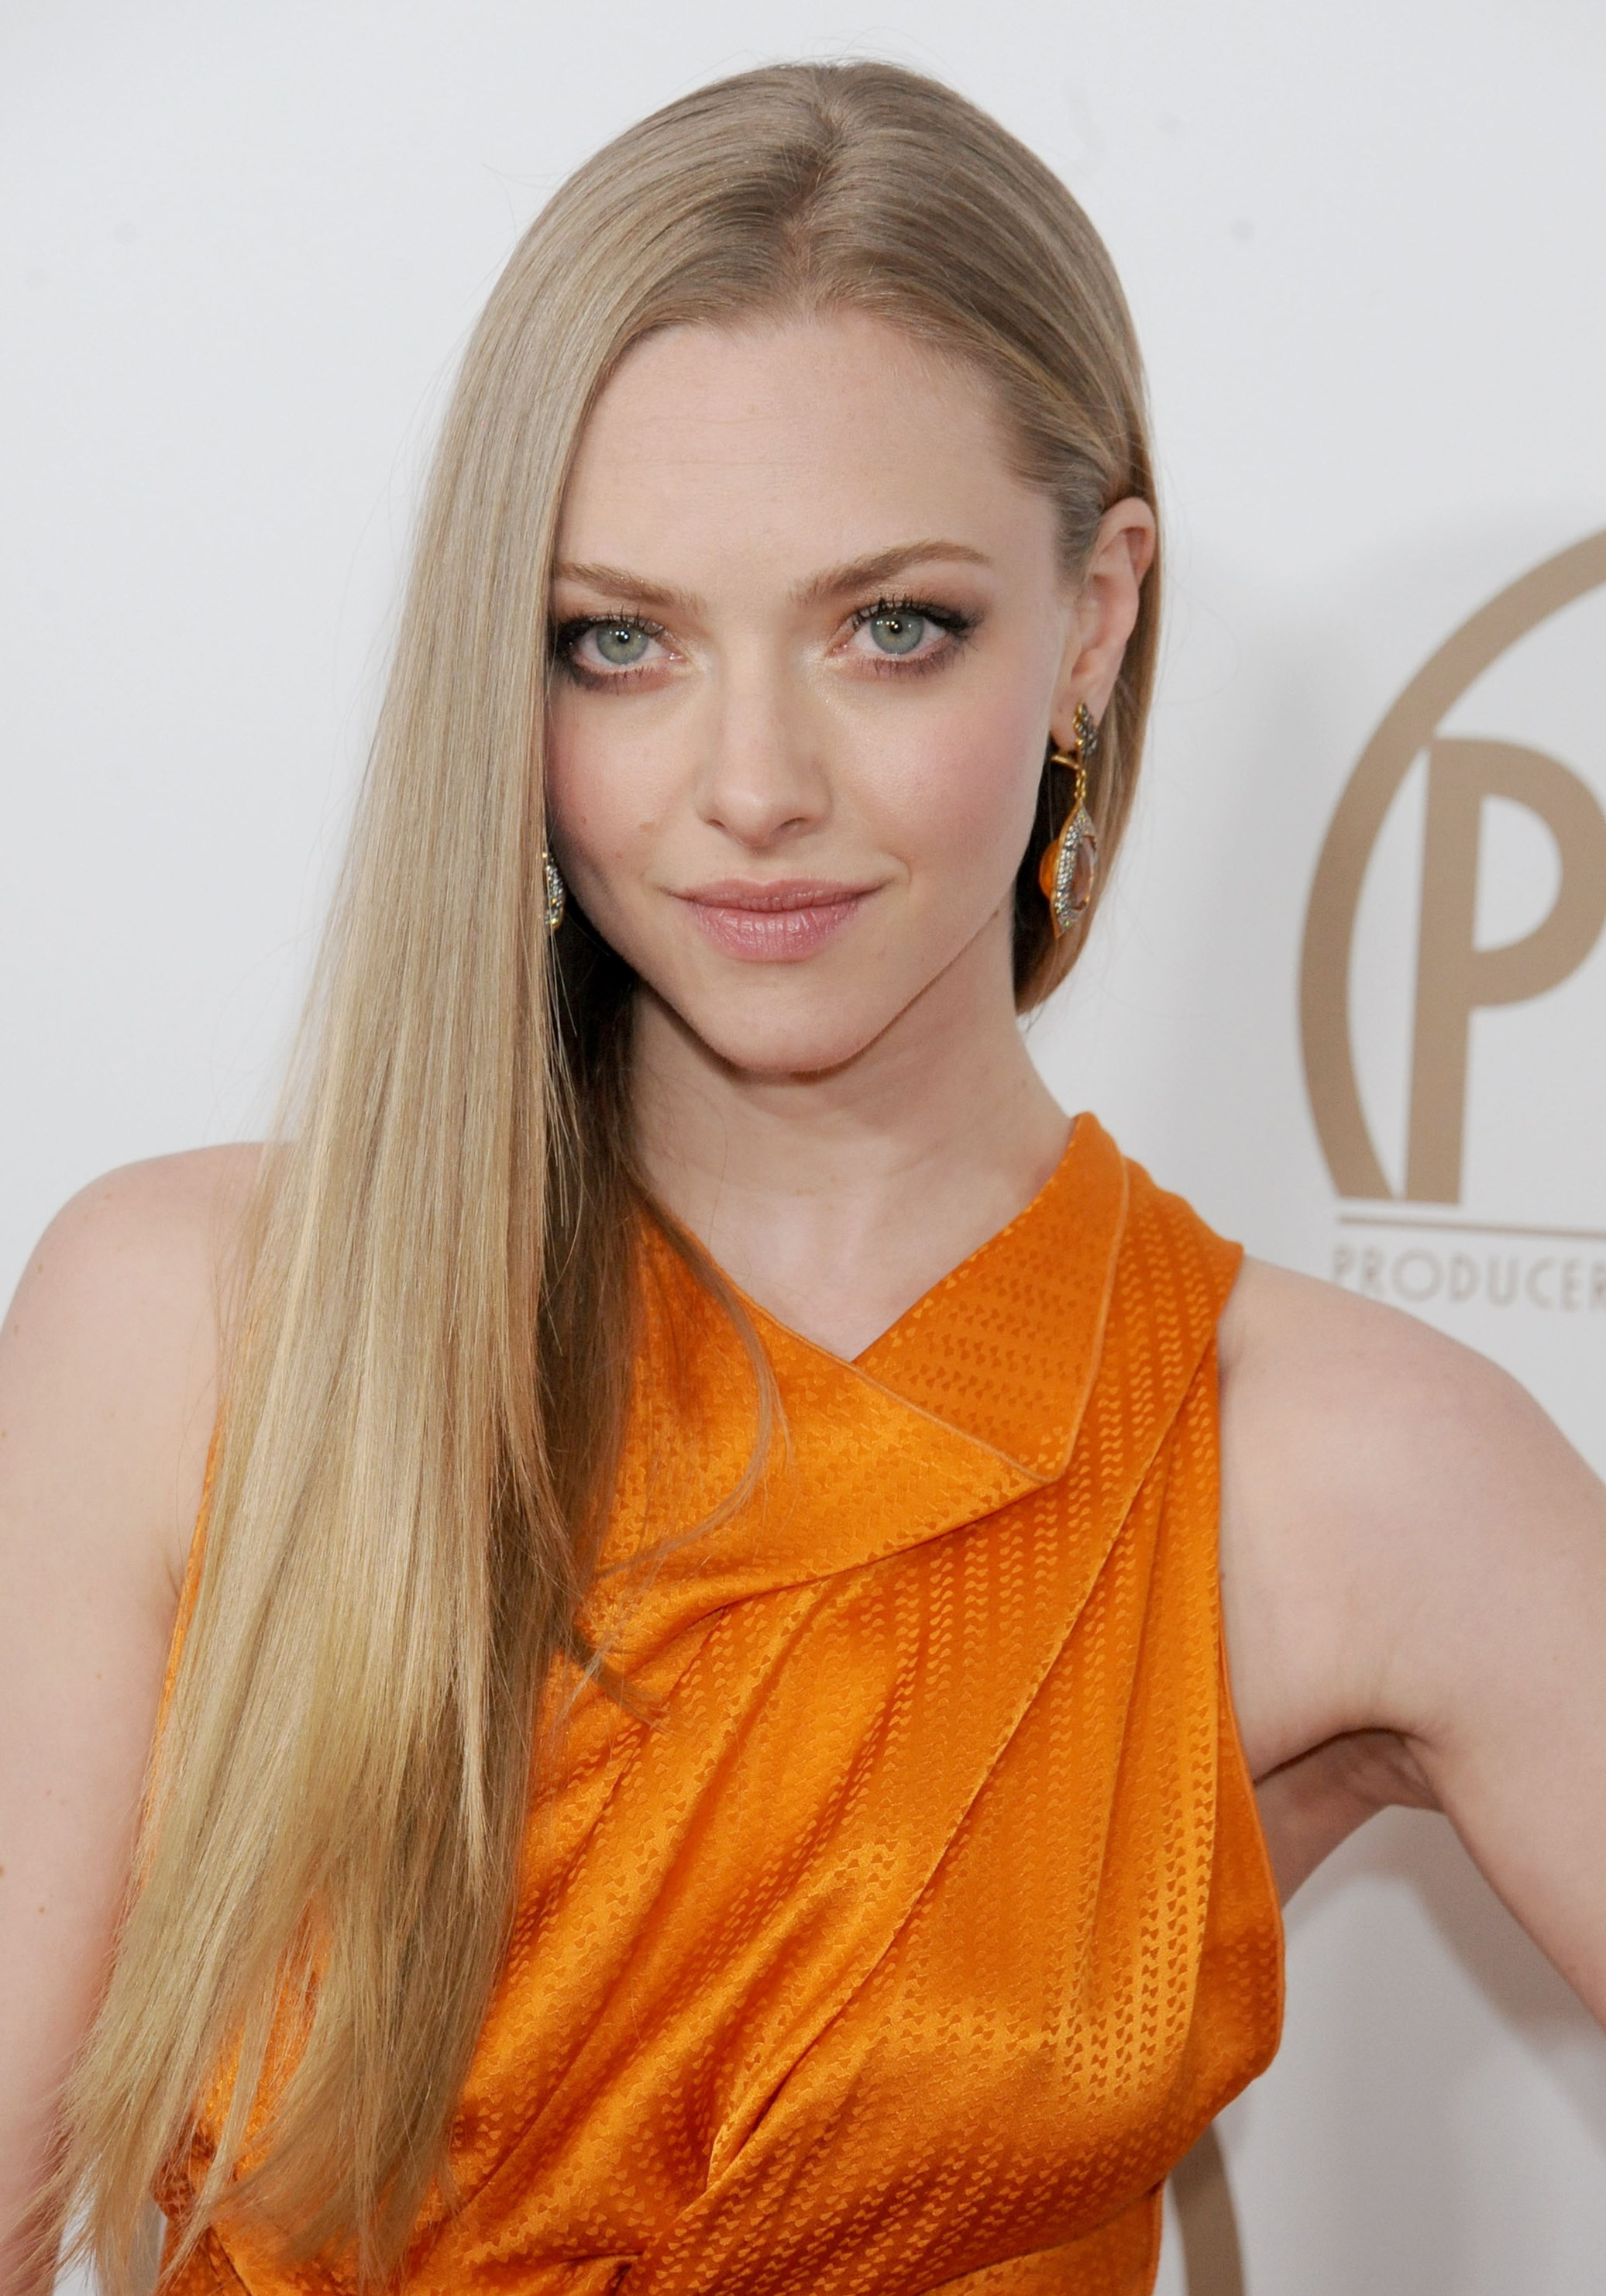 Amanda Seyfried - Best Looks - photos Amanda Seyfried